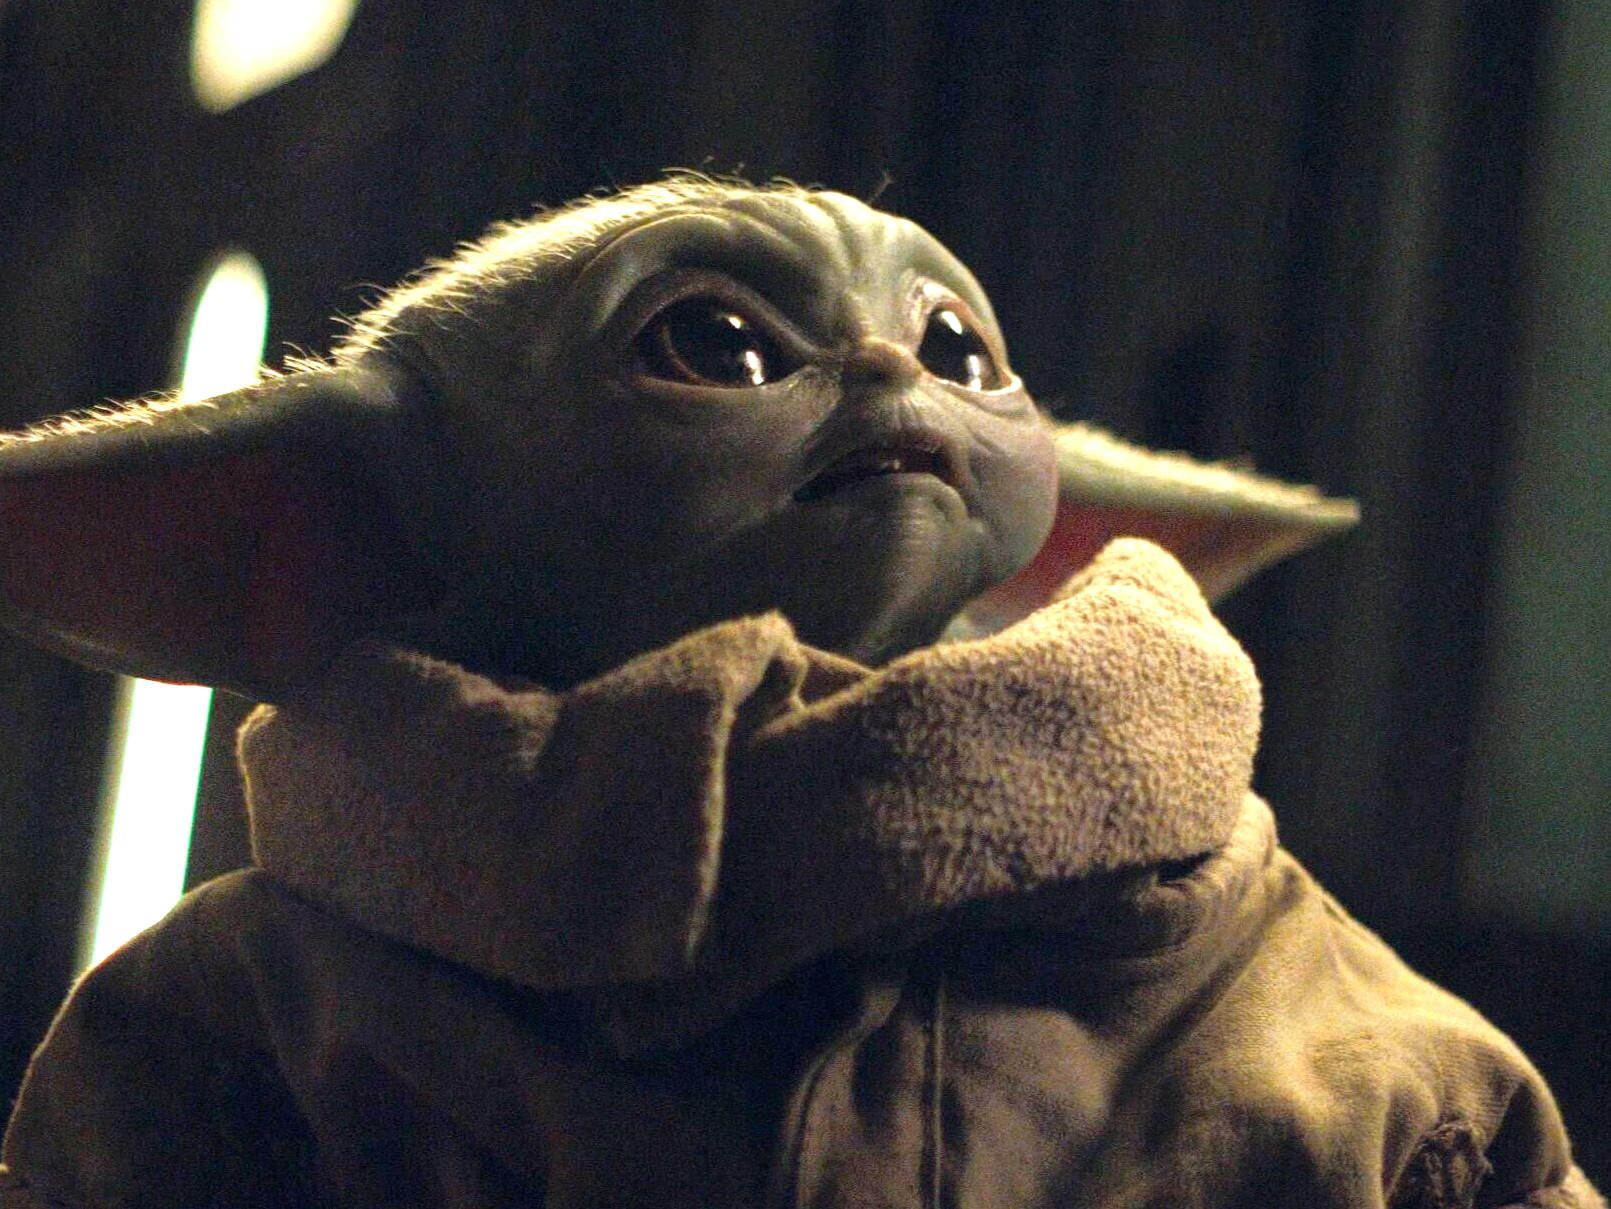 George Lucas' Picture With Baby Yoda Goes Viral